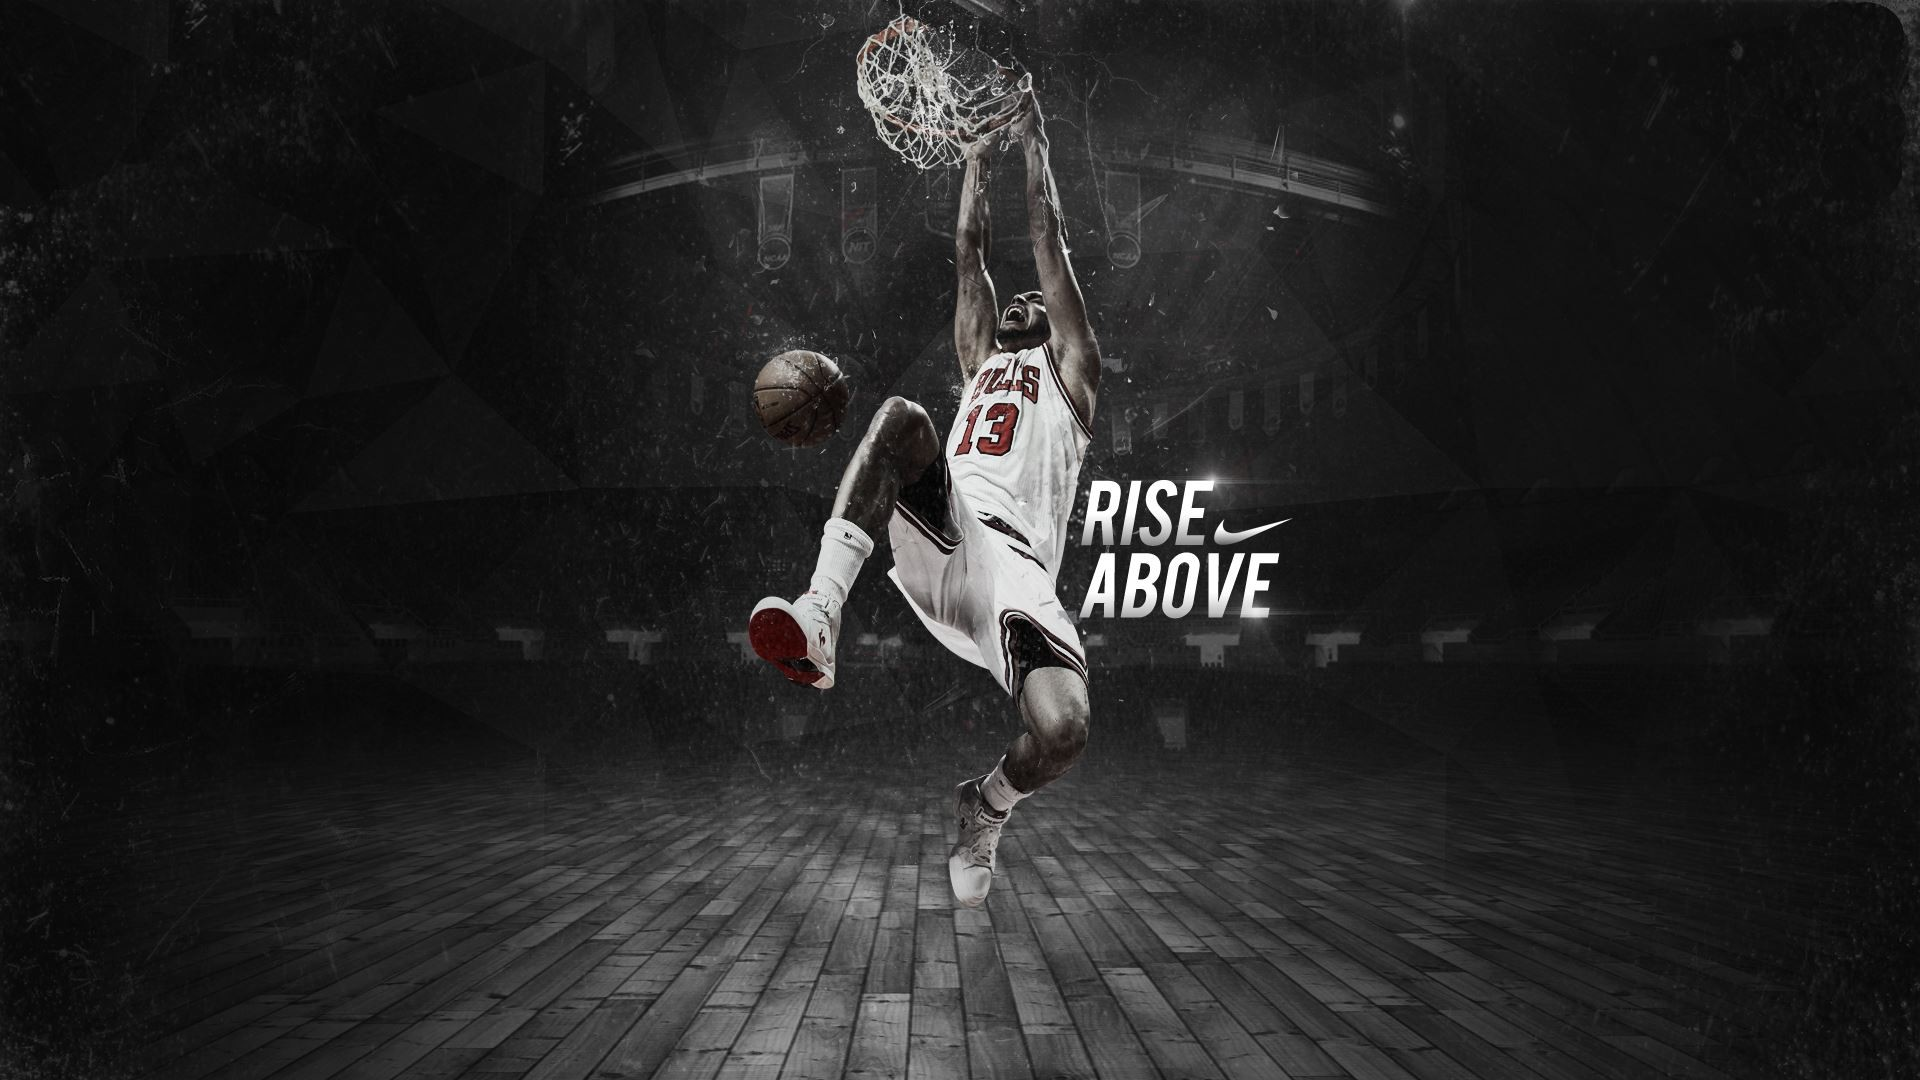 Best Basketball Backgrounds 60 Images